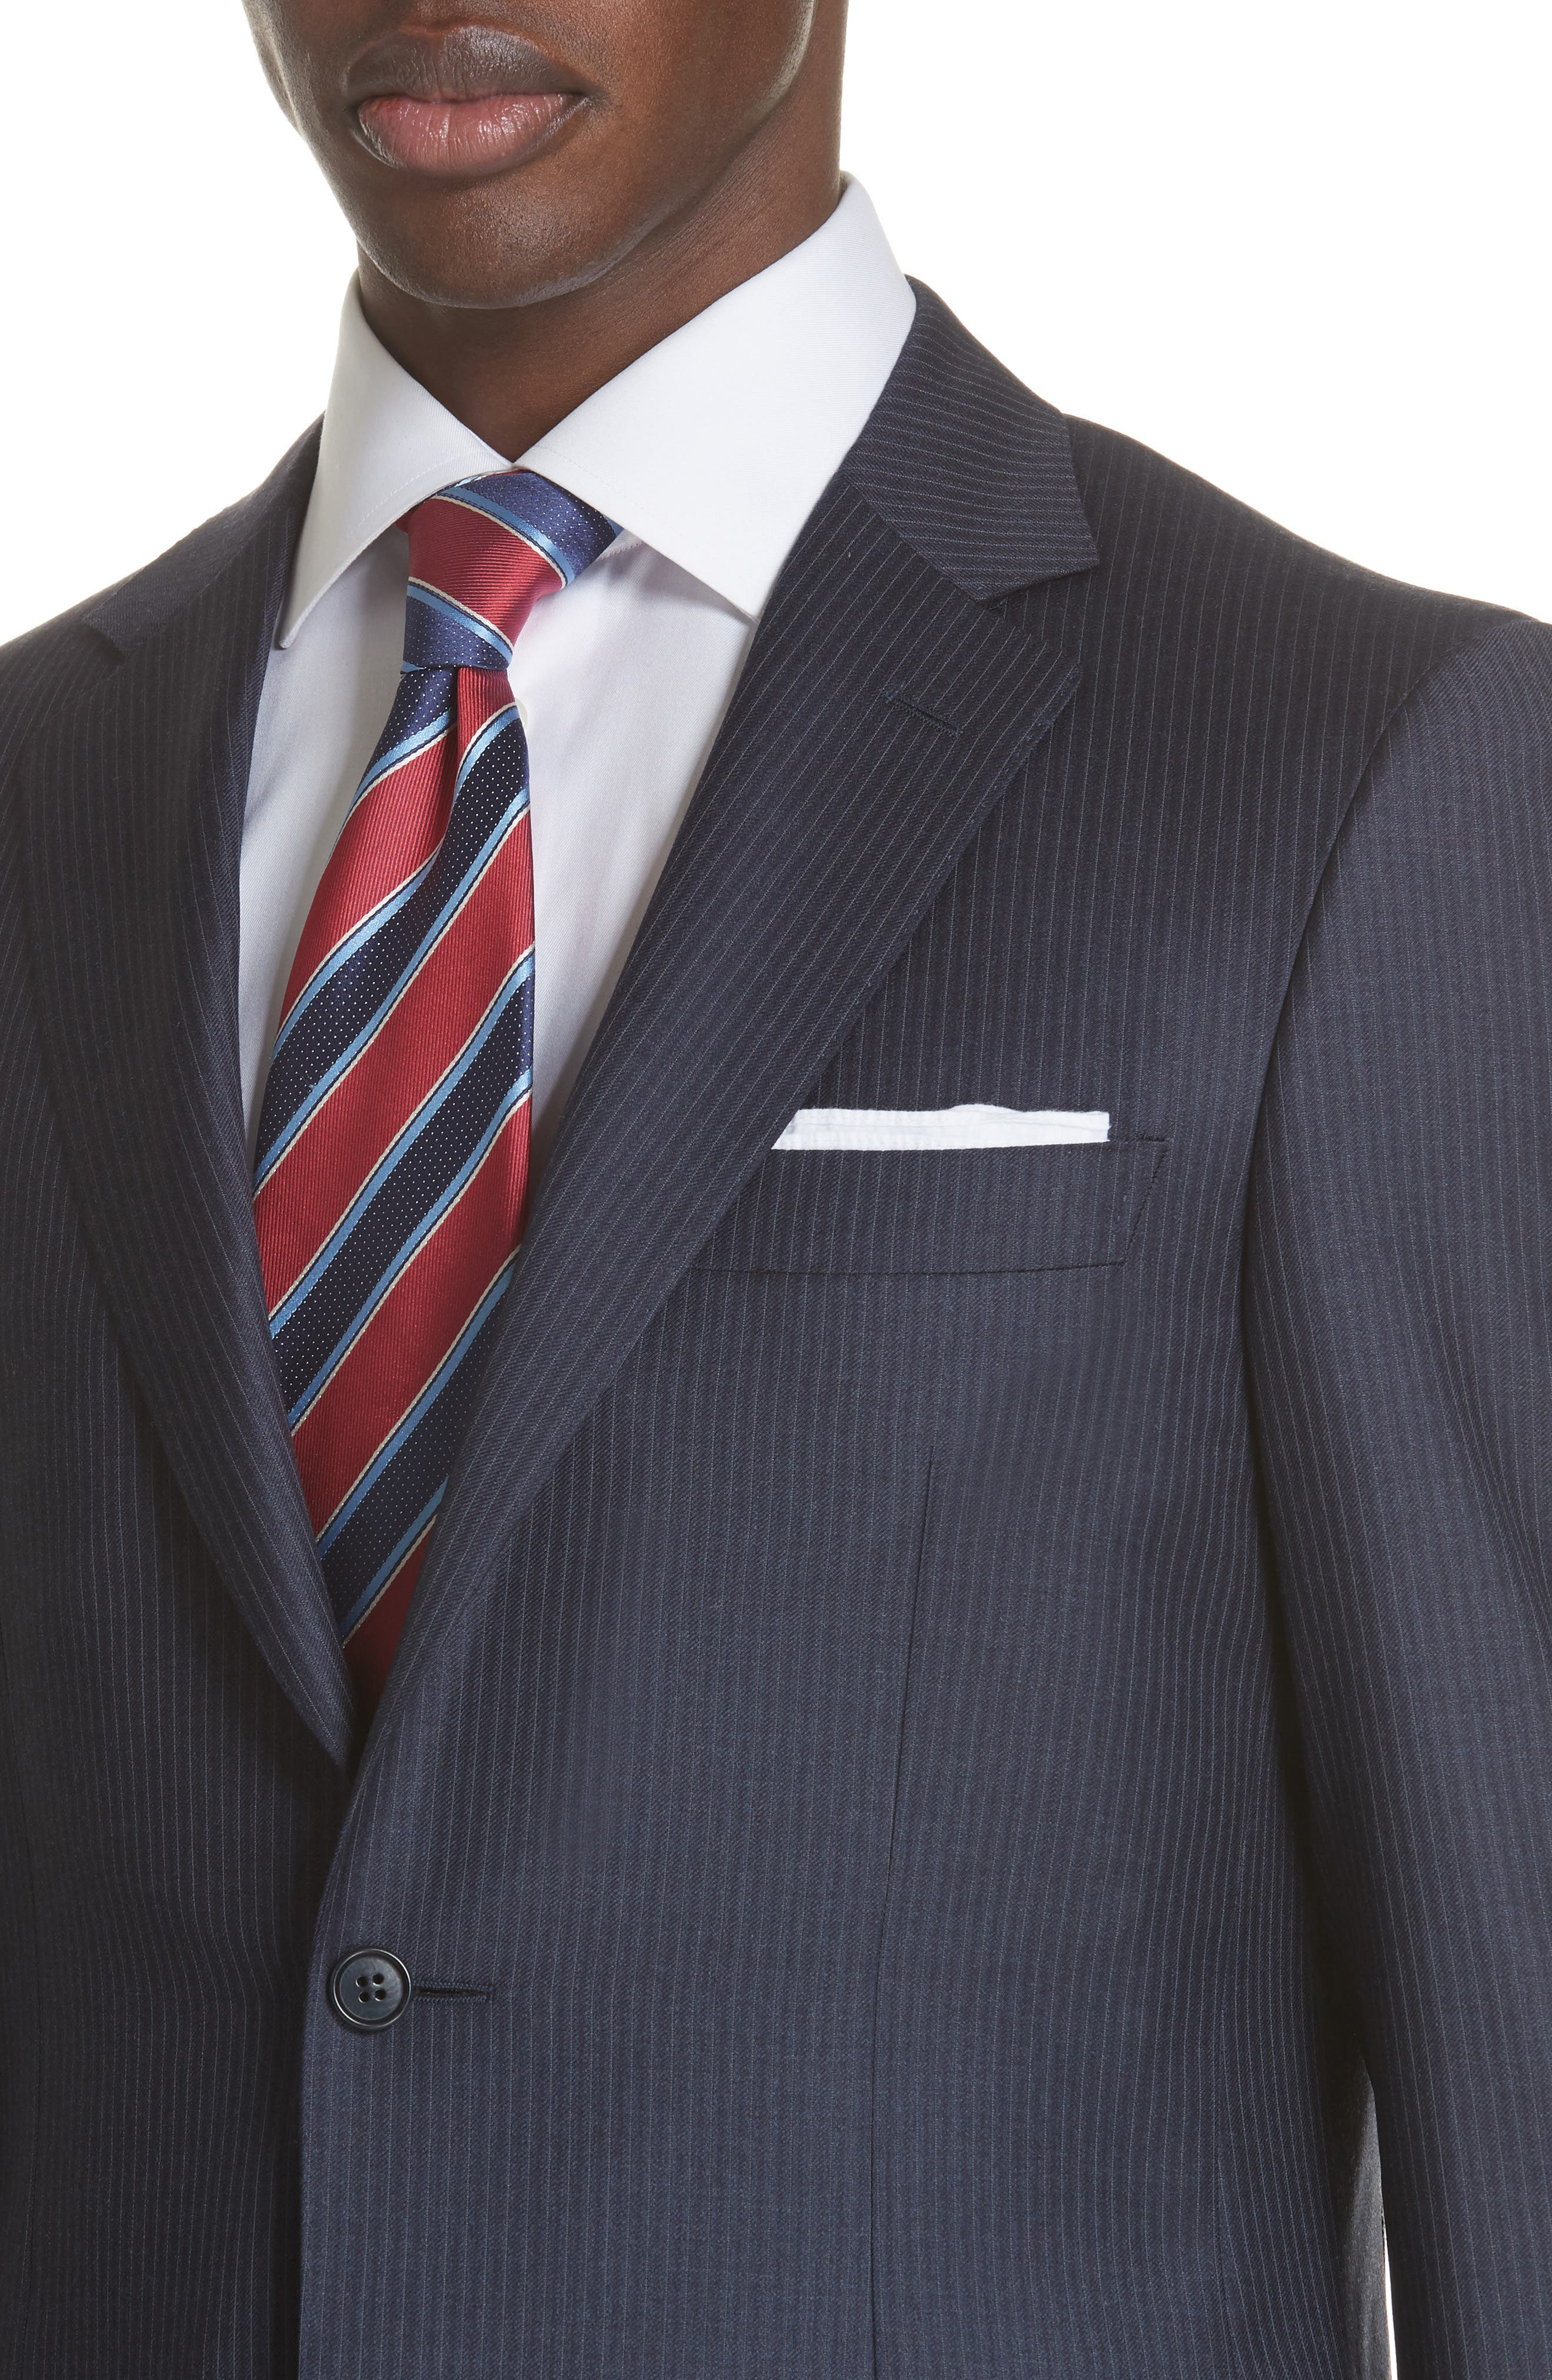 Siena Classic Fit Stripe Wool Suit,                             Alternate thumbnail 4, color,                             400